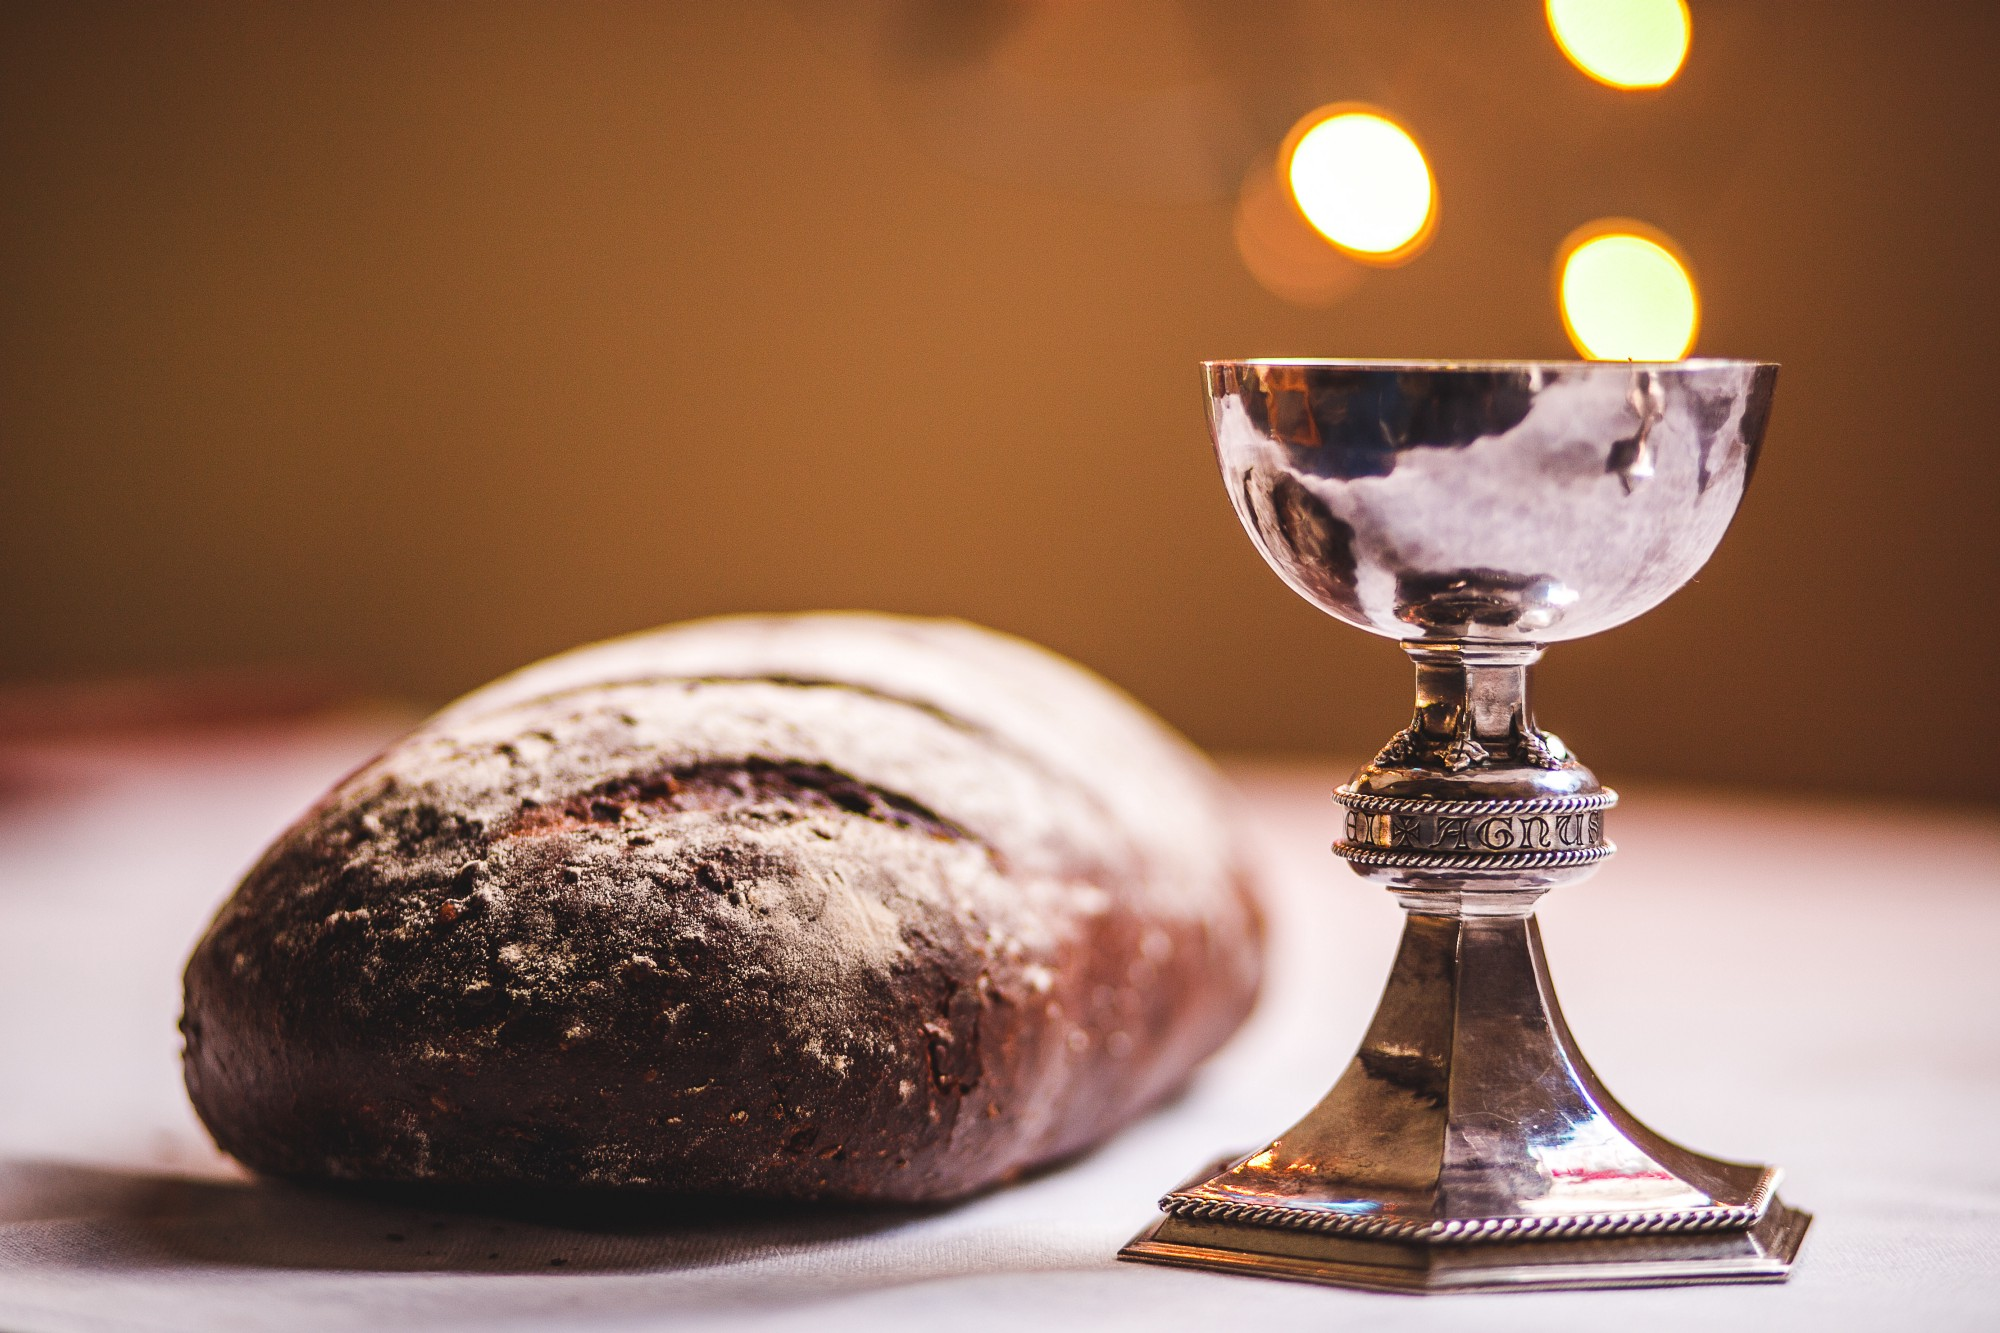 Holy Communion bread and wine in a beautiful gold challis with fabricated bubbles rising from wine to represent life both on light colored wood table with orange tan colored wood on back wall.